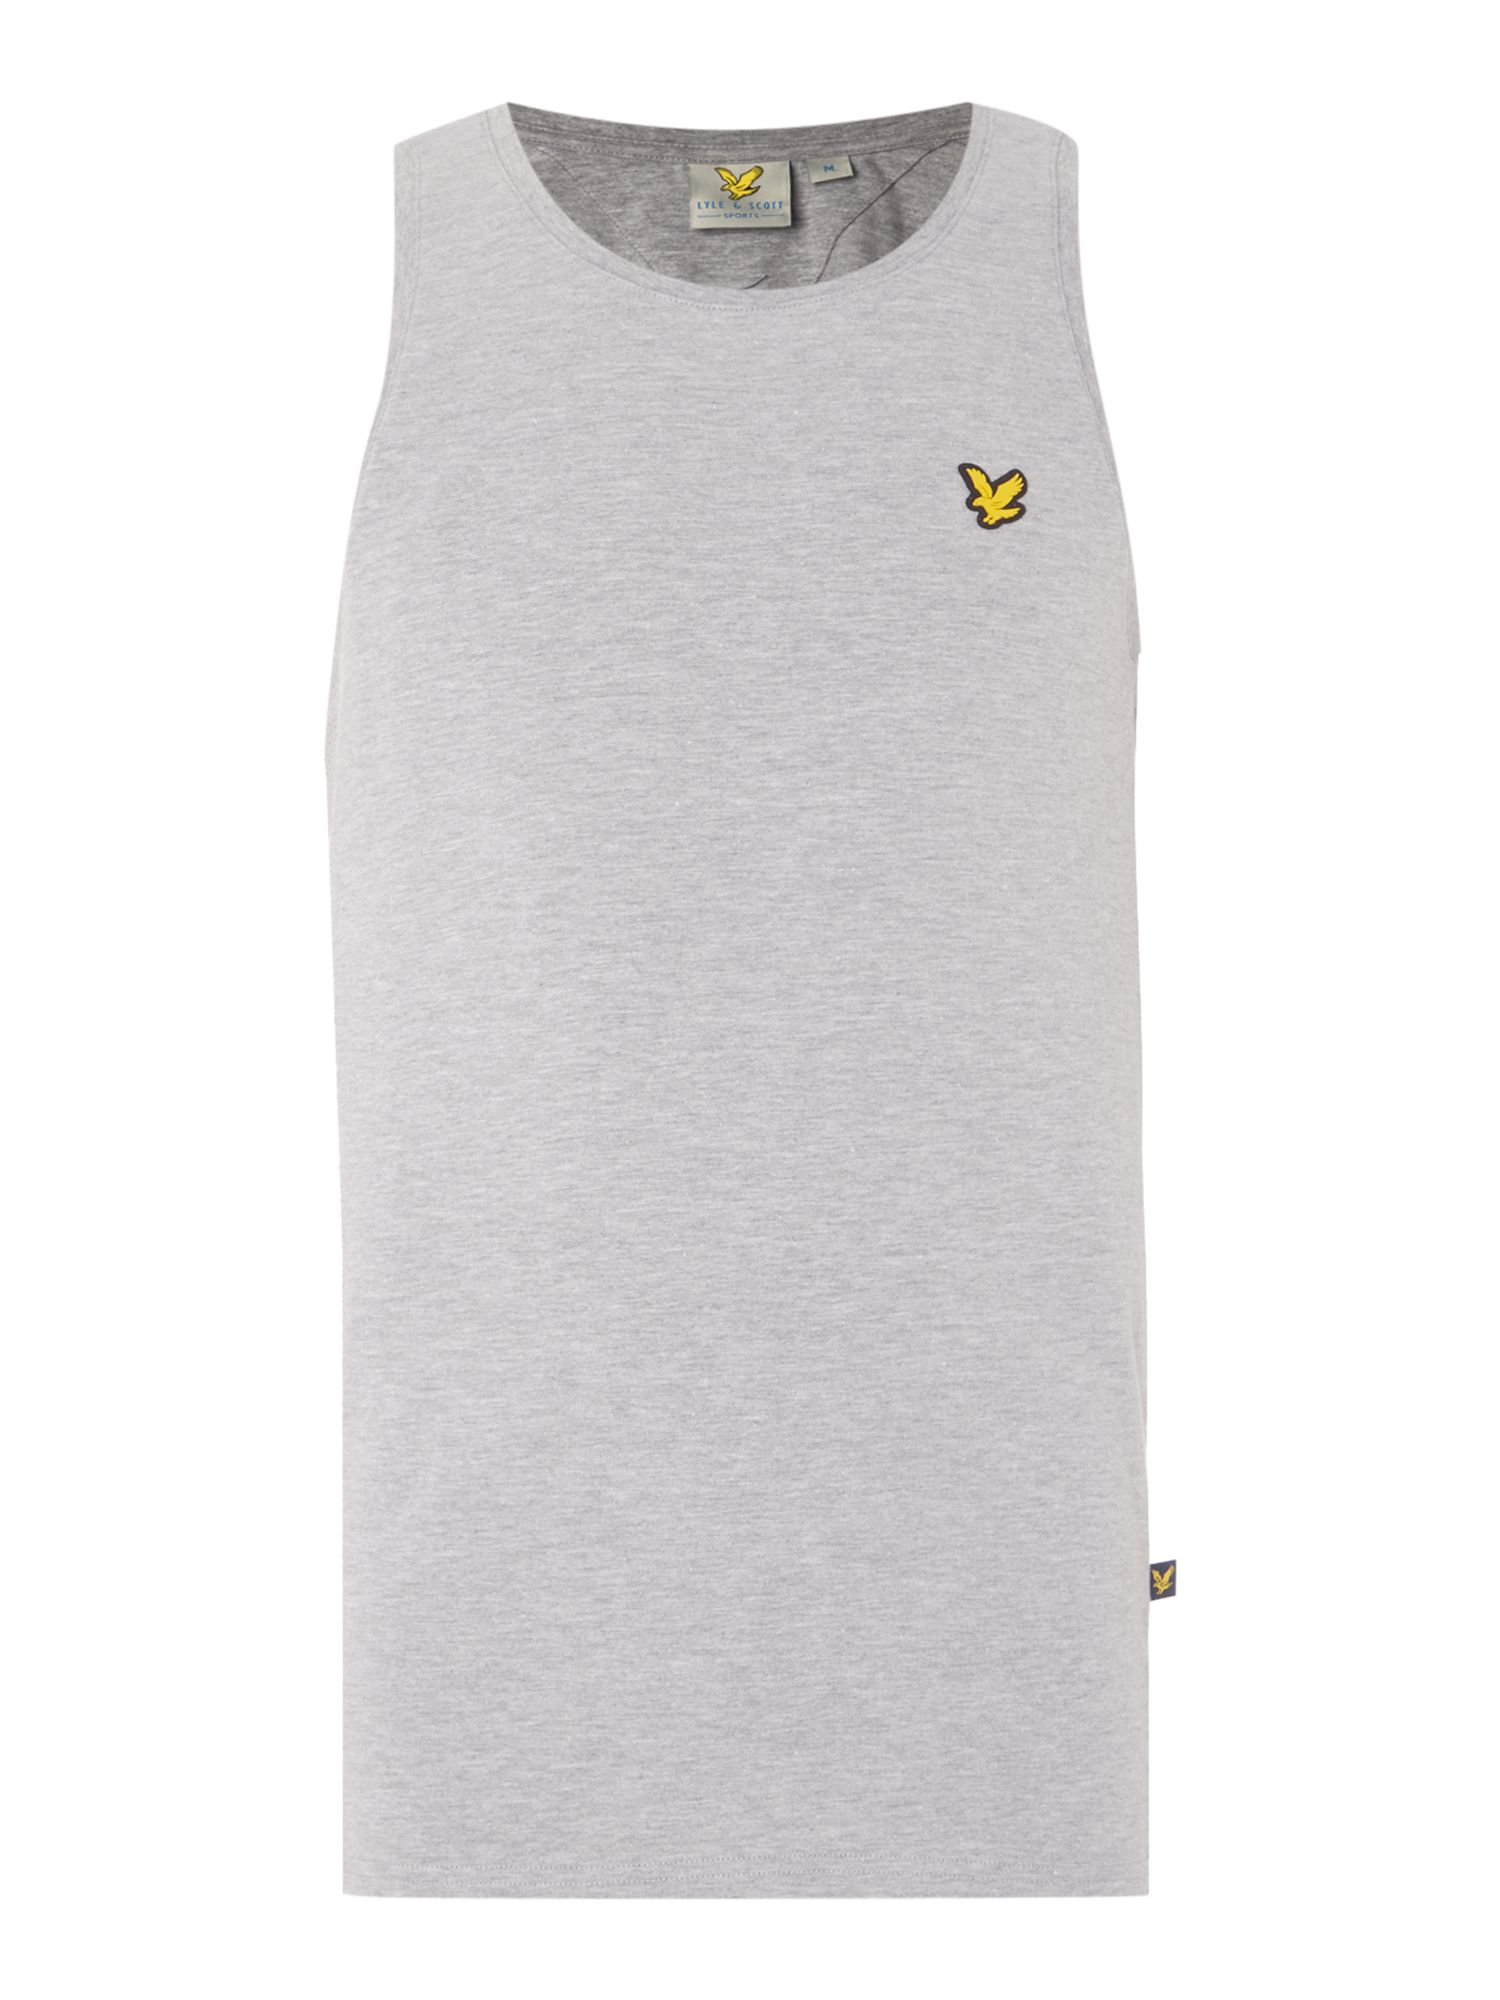 Lyle and Scott Men's Lyle and Scott Sports Training Vest, Light Grey Marl